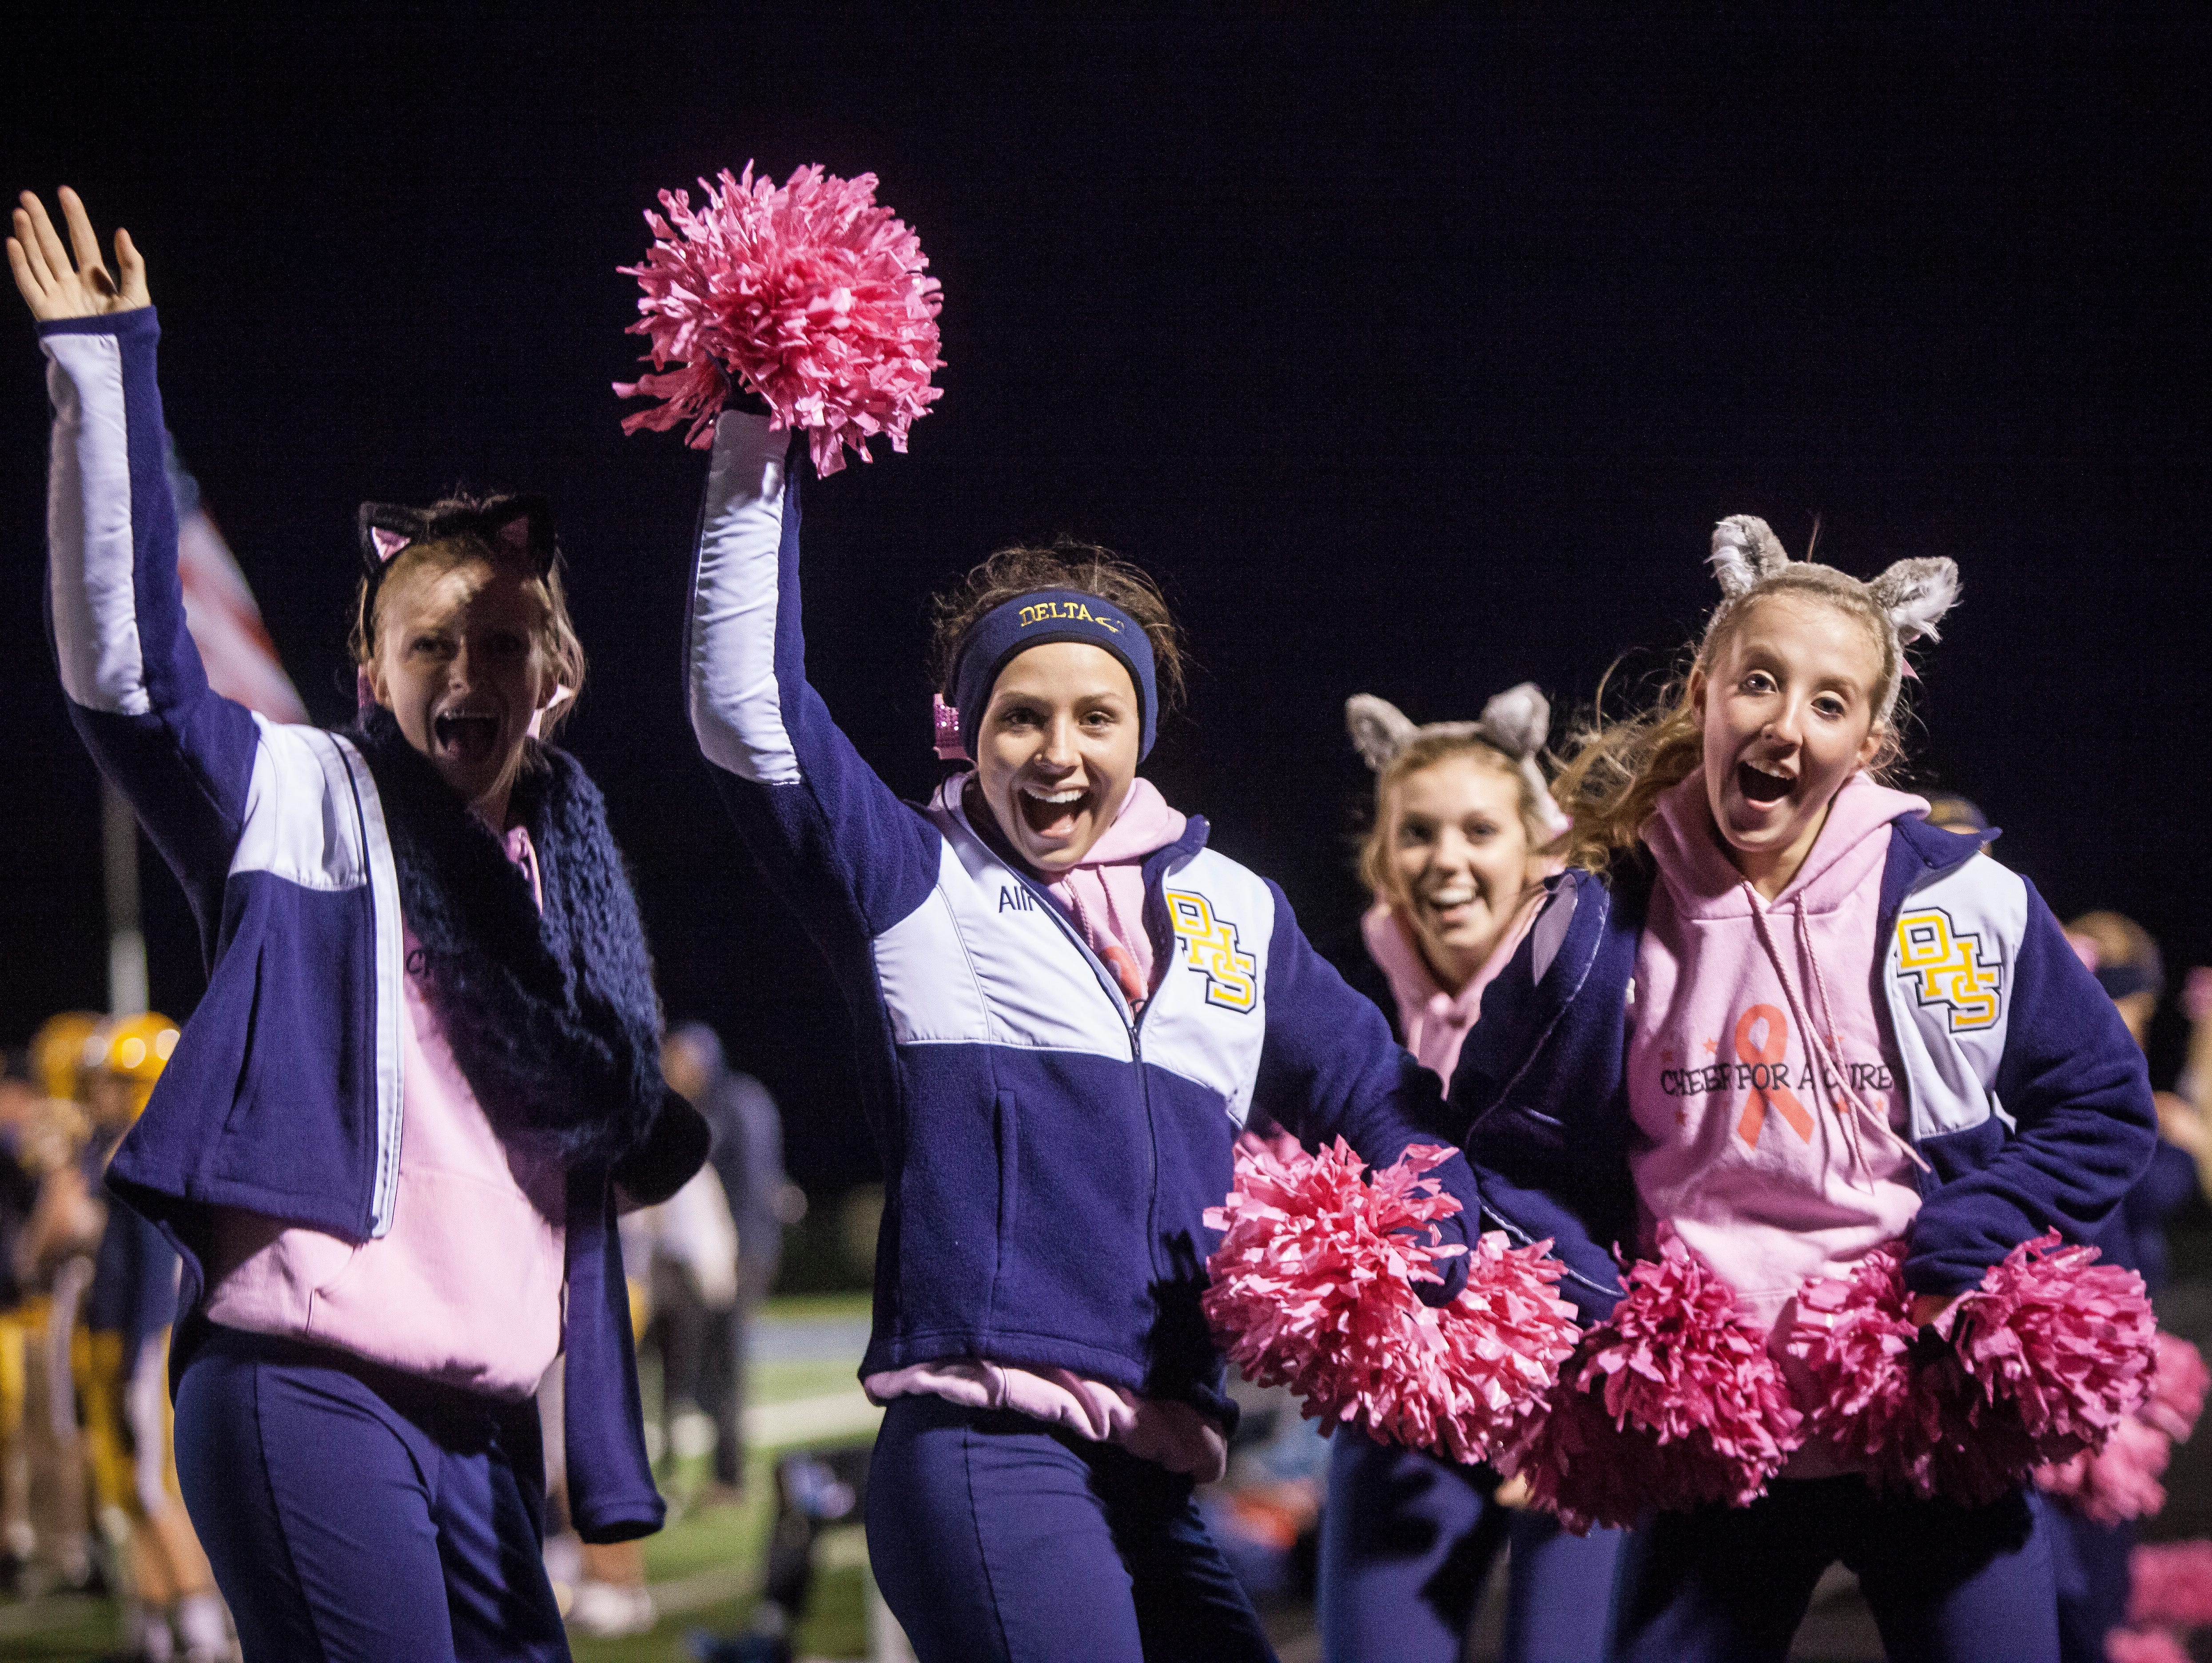 Delta cheerleaders keep the energy high at the sectional game Friday night despite a one sided game. Delta won 49-7.